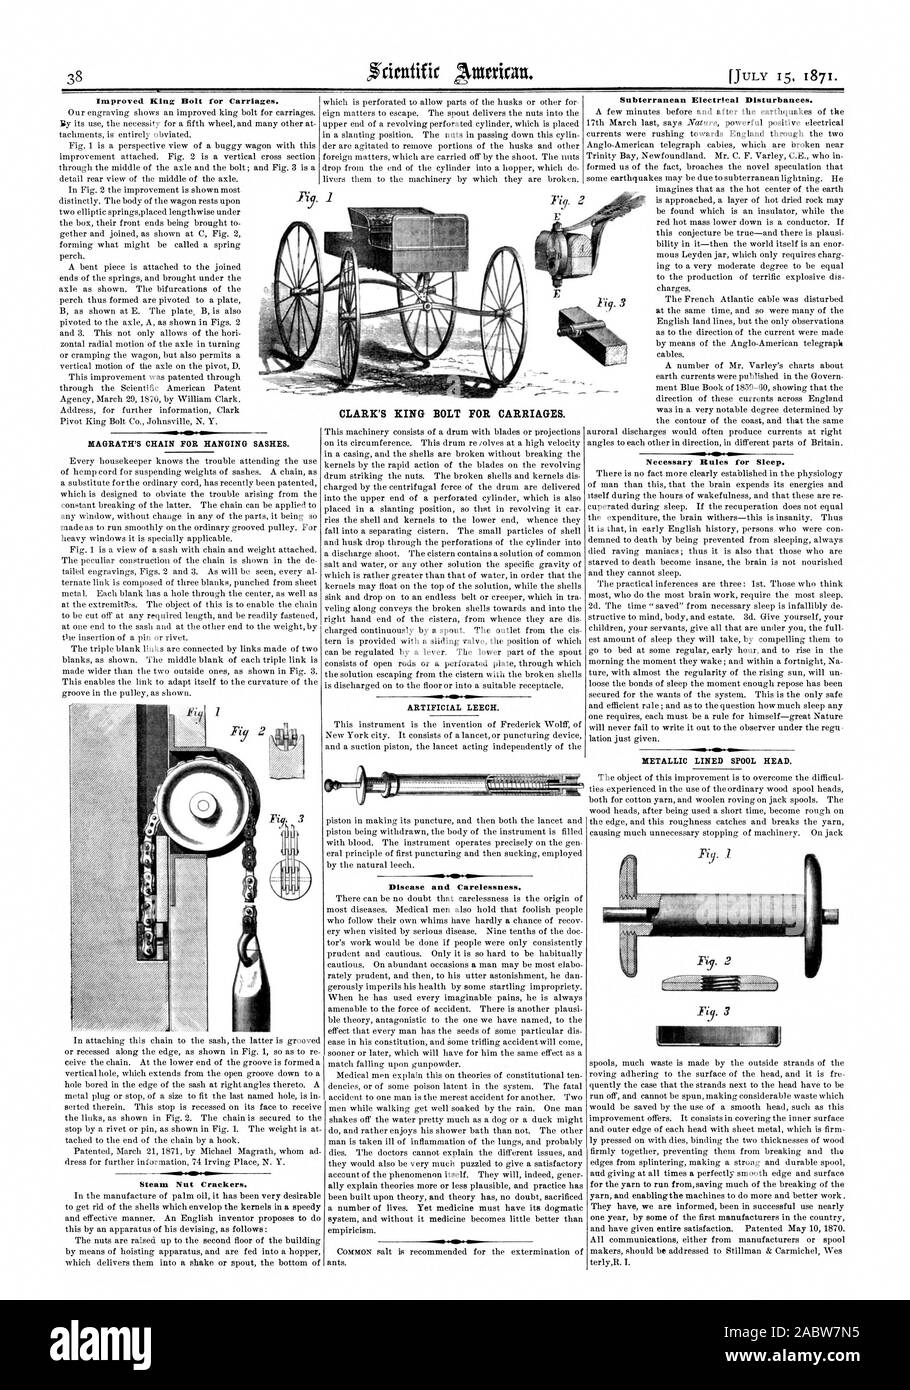 MAGRATH'S CHAIN FOR HANGING SASHES. CLARK'S KING BOLT FOR CARRIAGES. ARTIFICIAL LEECH. METALLIC LINED SPOOL HEAD. firmly together preventing them from breaking and the edges from splintering making a strong and durable spool for the yarn to run from saving much of the breaking of the They have we are informed been in successful use nearly one year by some of the first manufacturers in the country terlyR. I., scientific american, 1871-07-15 Stock Photo